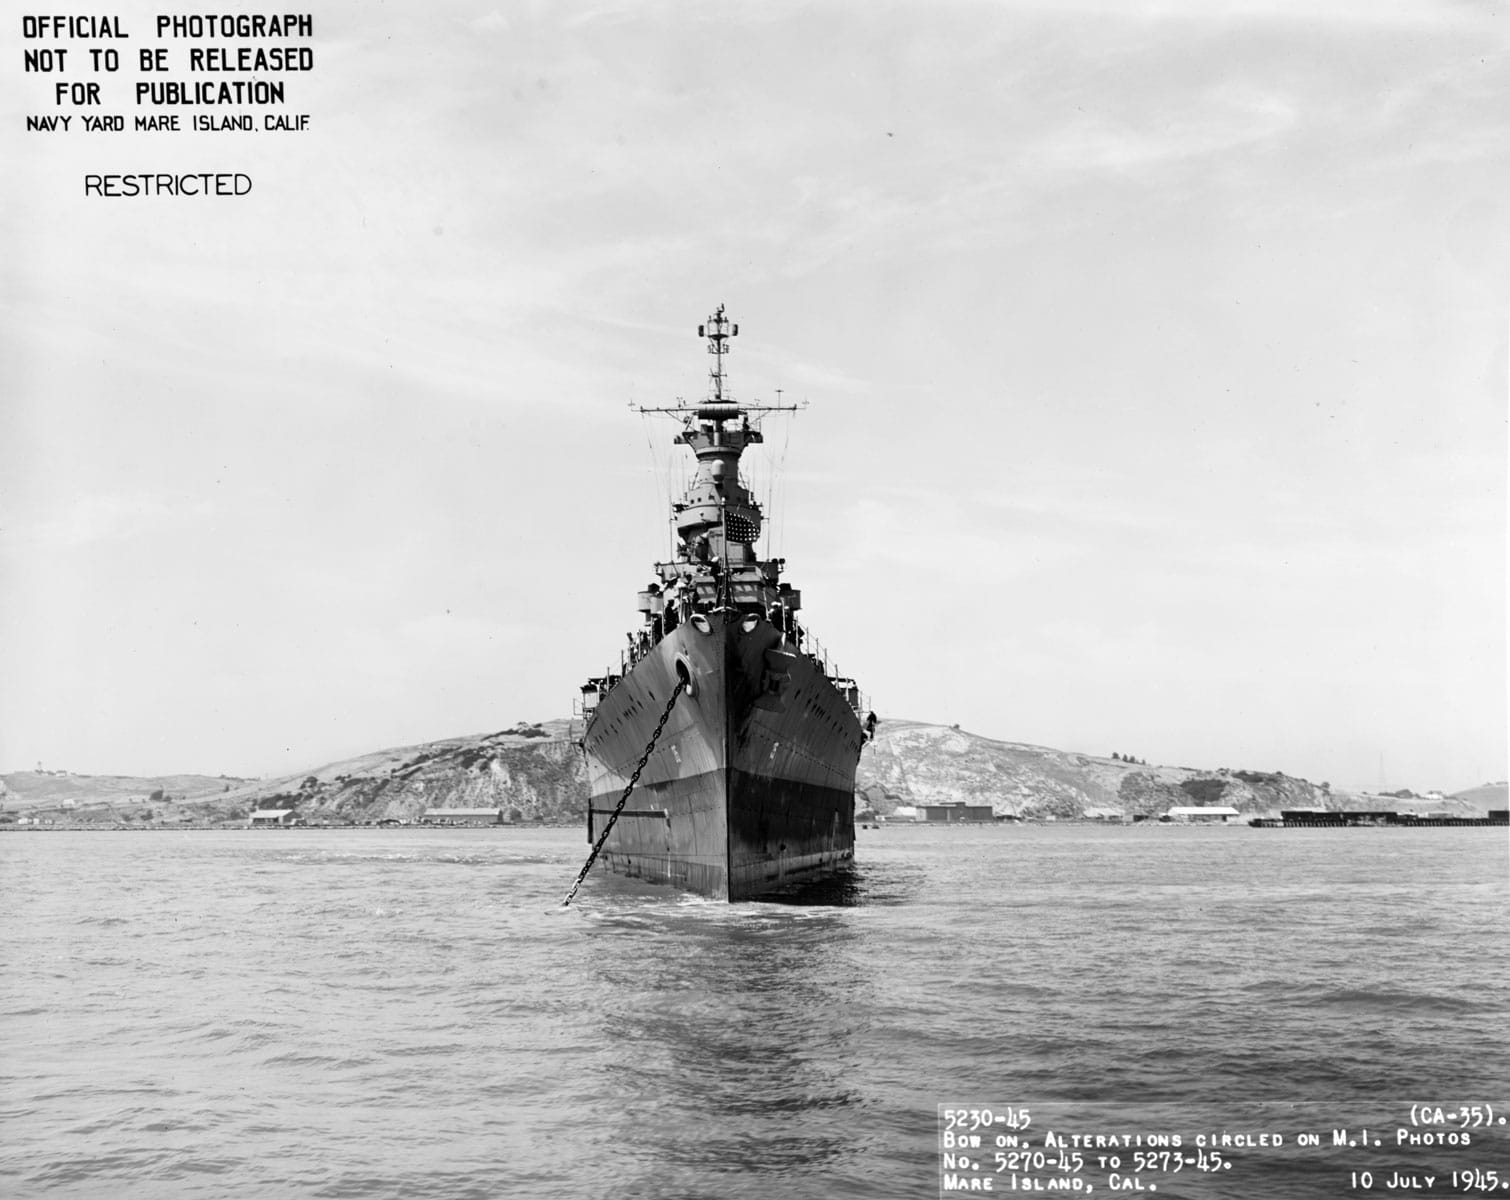 The United States Navy Portland-class heavy cruiser USS Indianapolis (CA 35) at anchor off the Mare Island Navy Yard, in Northern California following its final overhaul. The release status of this photograph has changed to released since the stamp indicating that this photo is not released was applied.